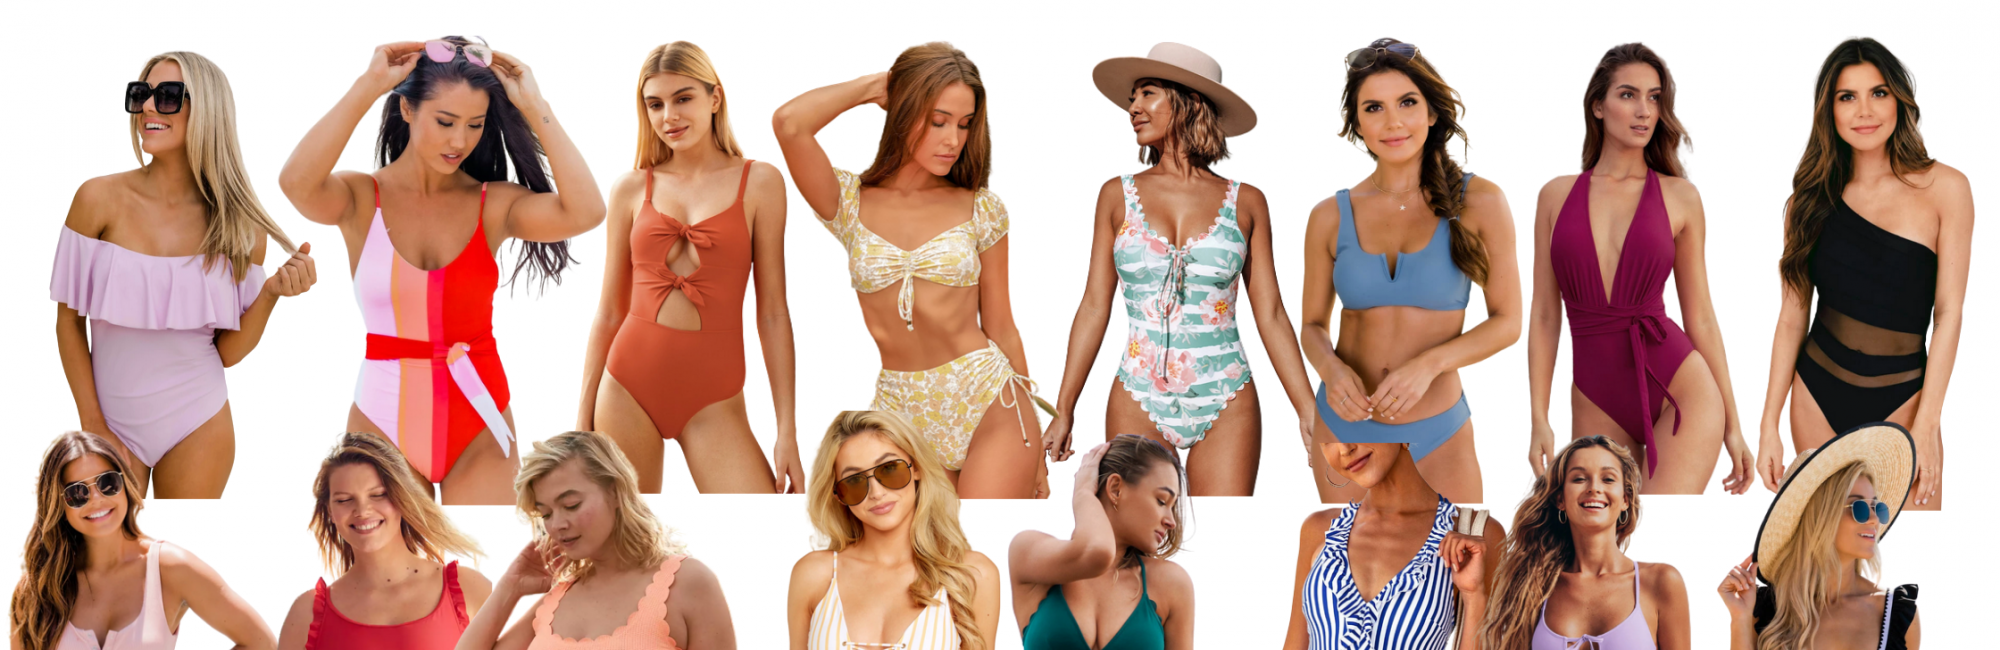 Swimsuits by Color to Get You Excited for Warmer Weather